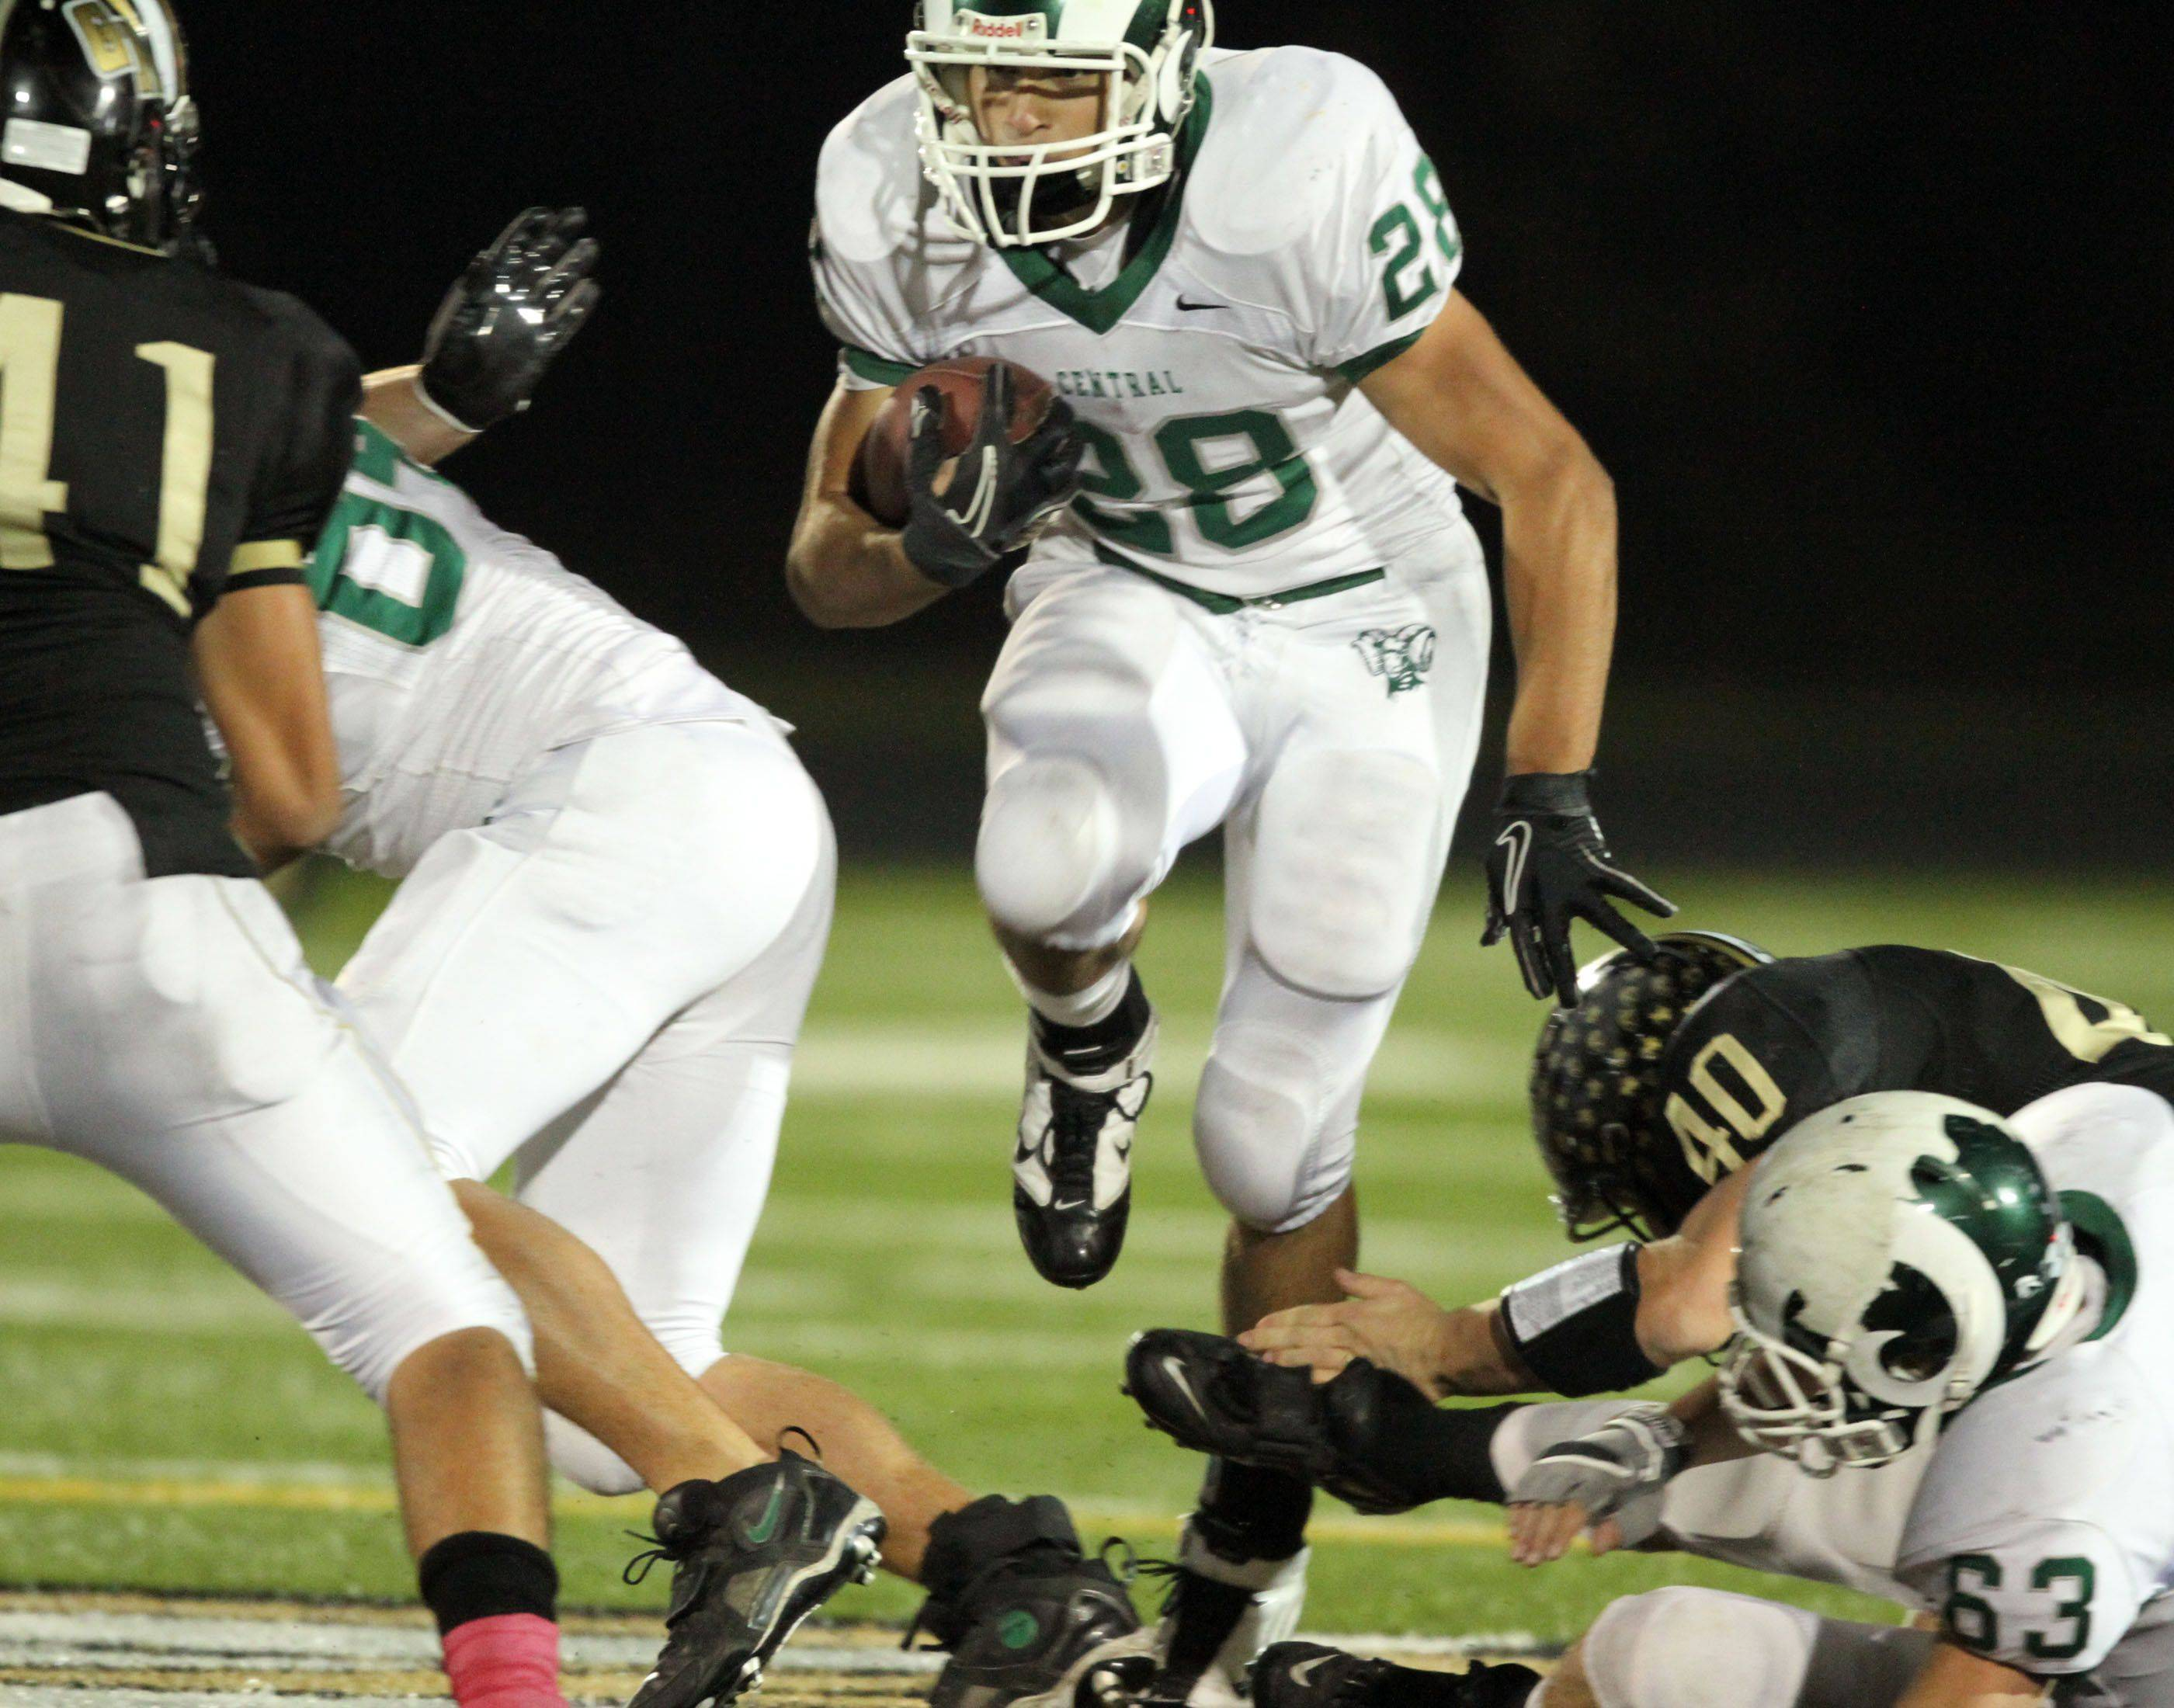 WEEK 8- Grayslake Central's Joel Valdivia runs the ball up the middle at Grayslake North.